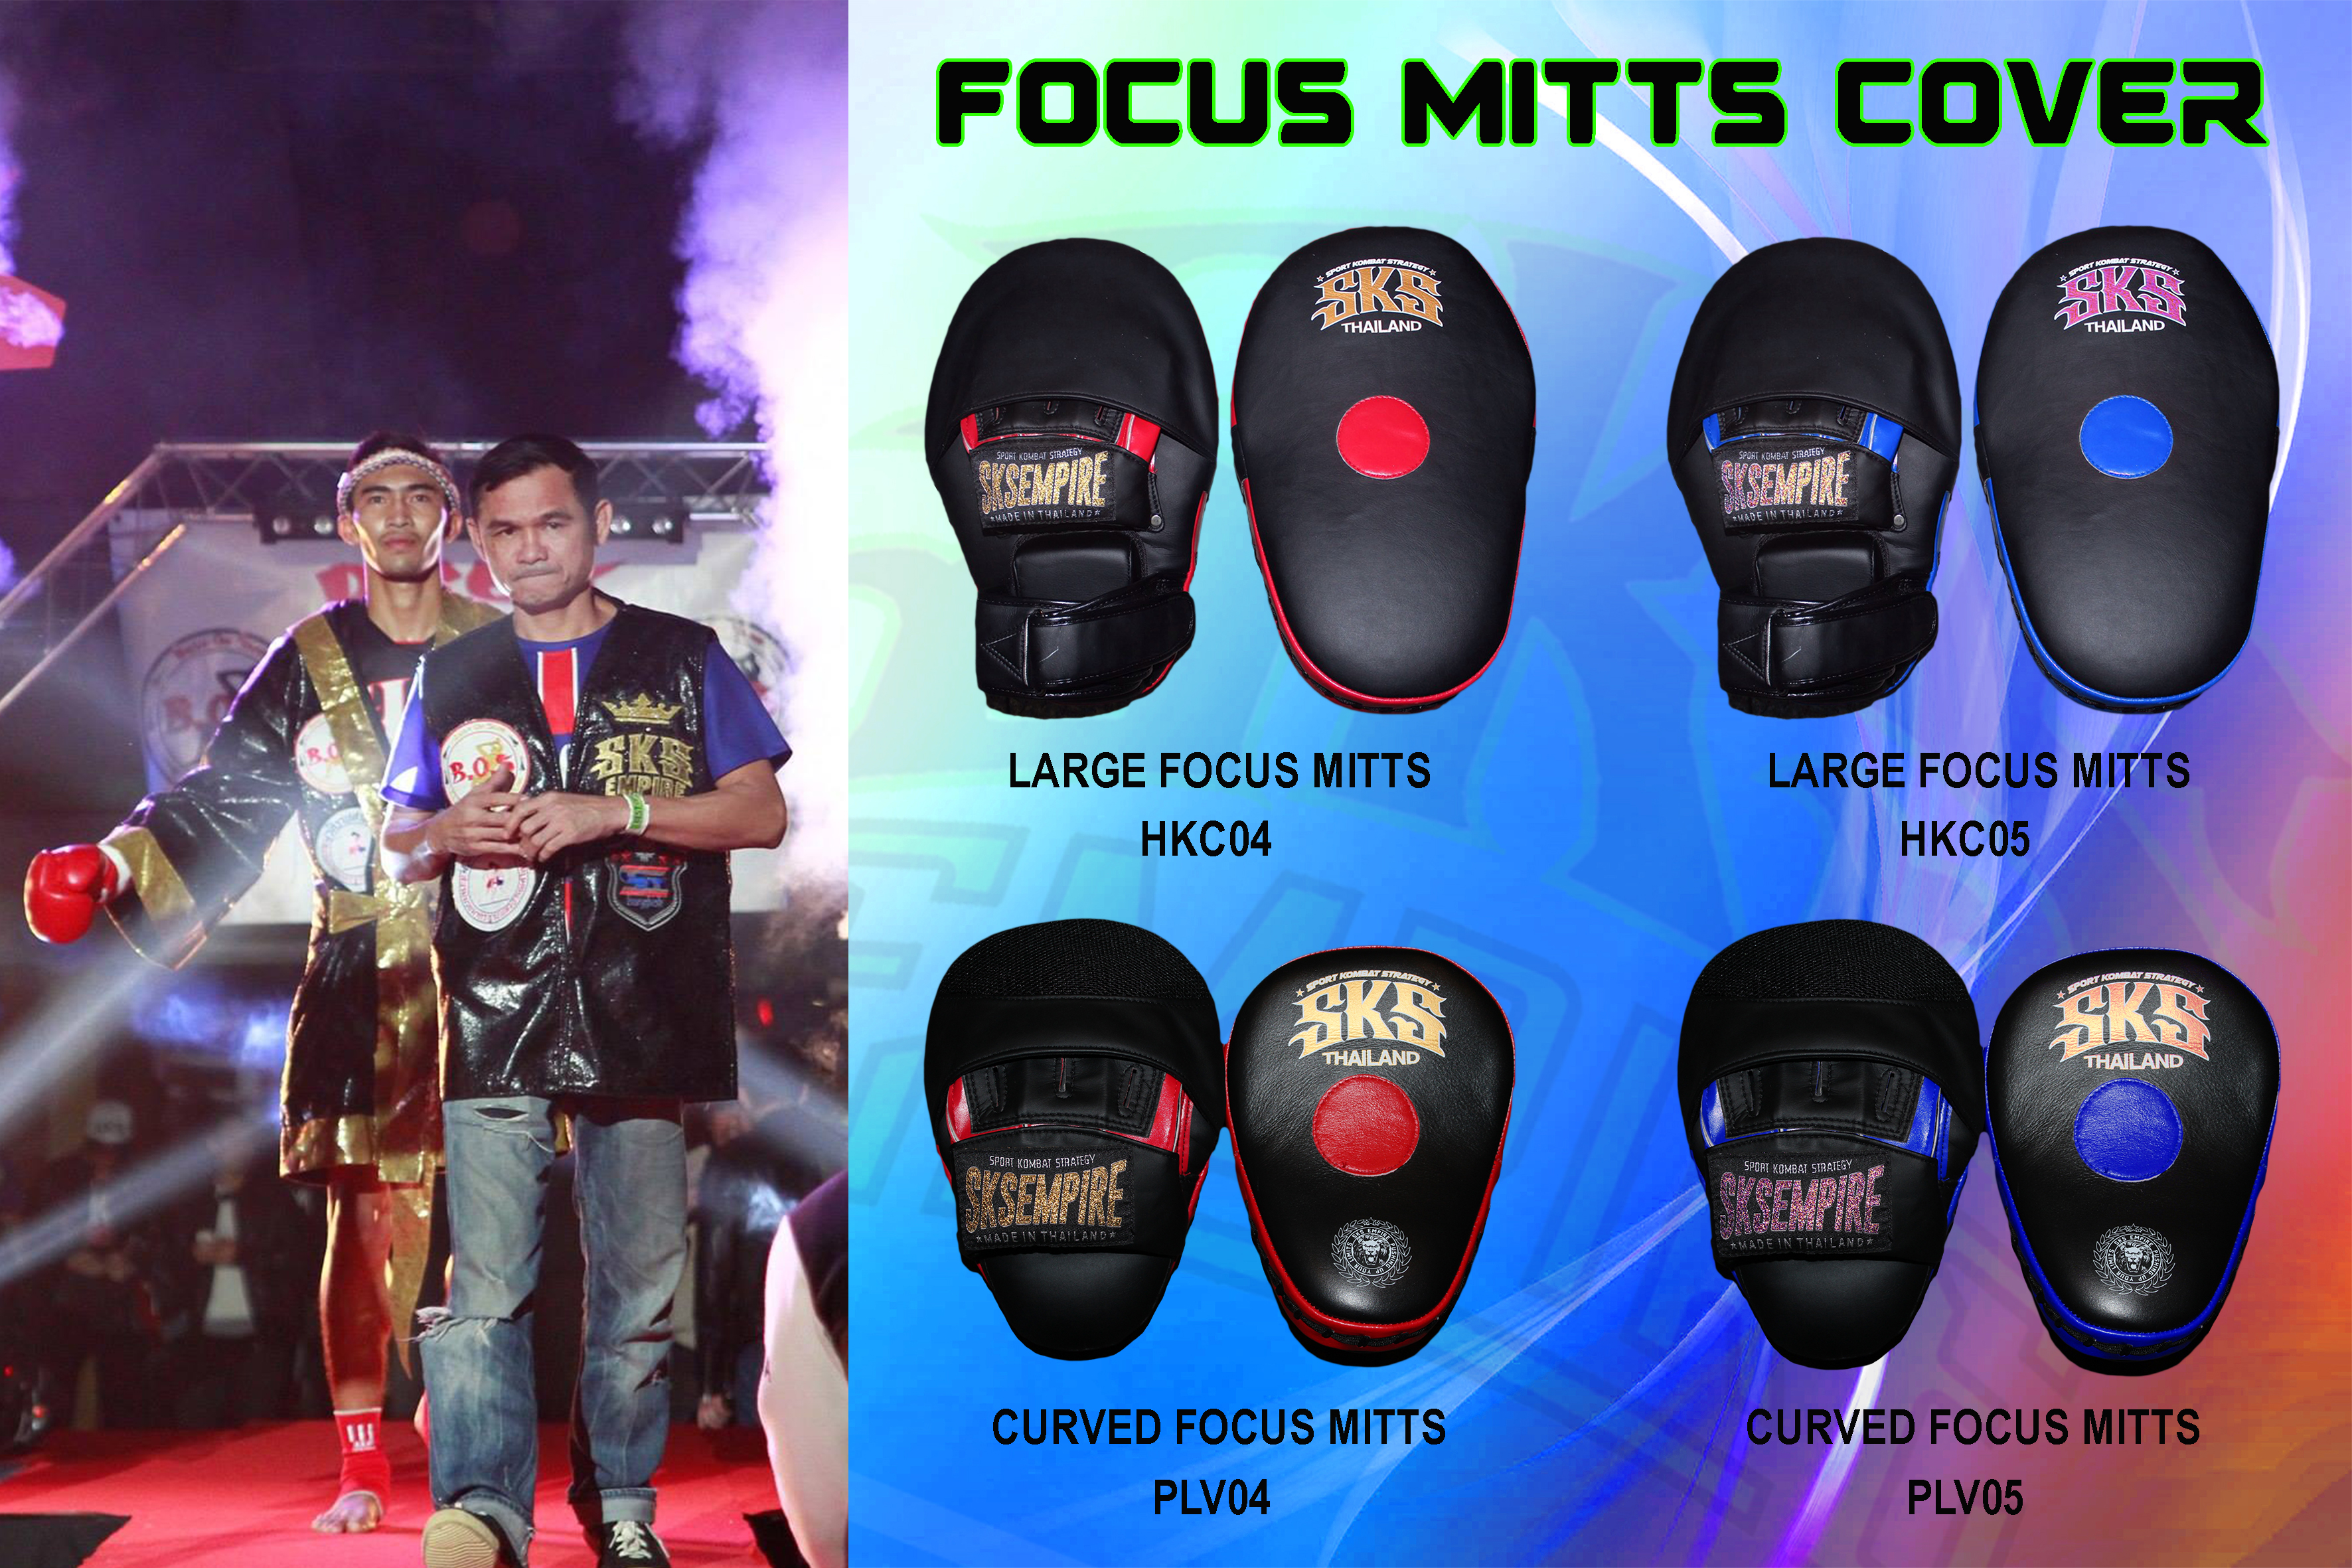 FOCUS MITTS COVER